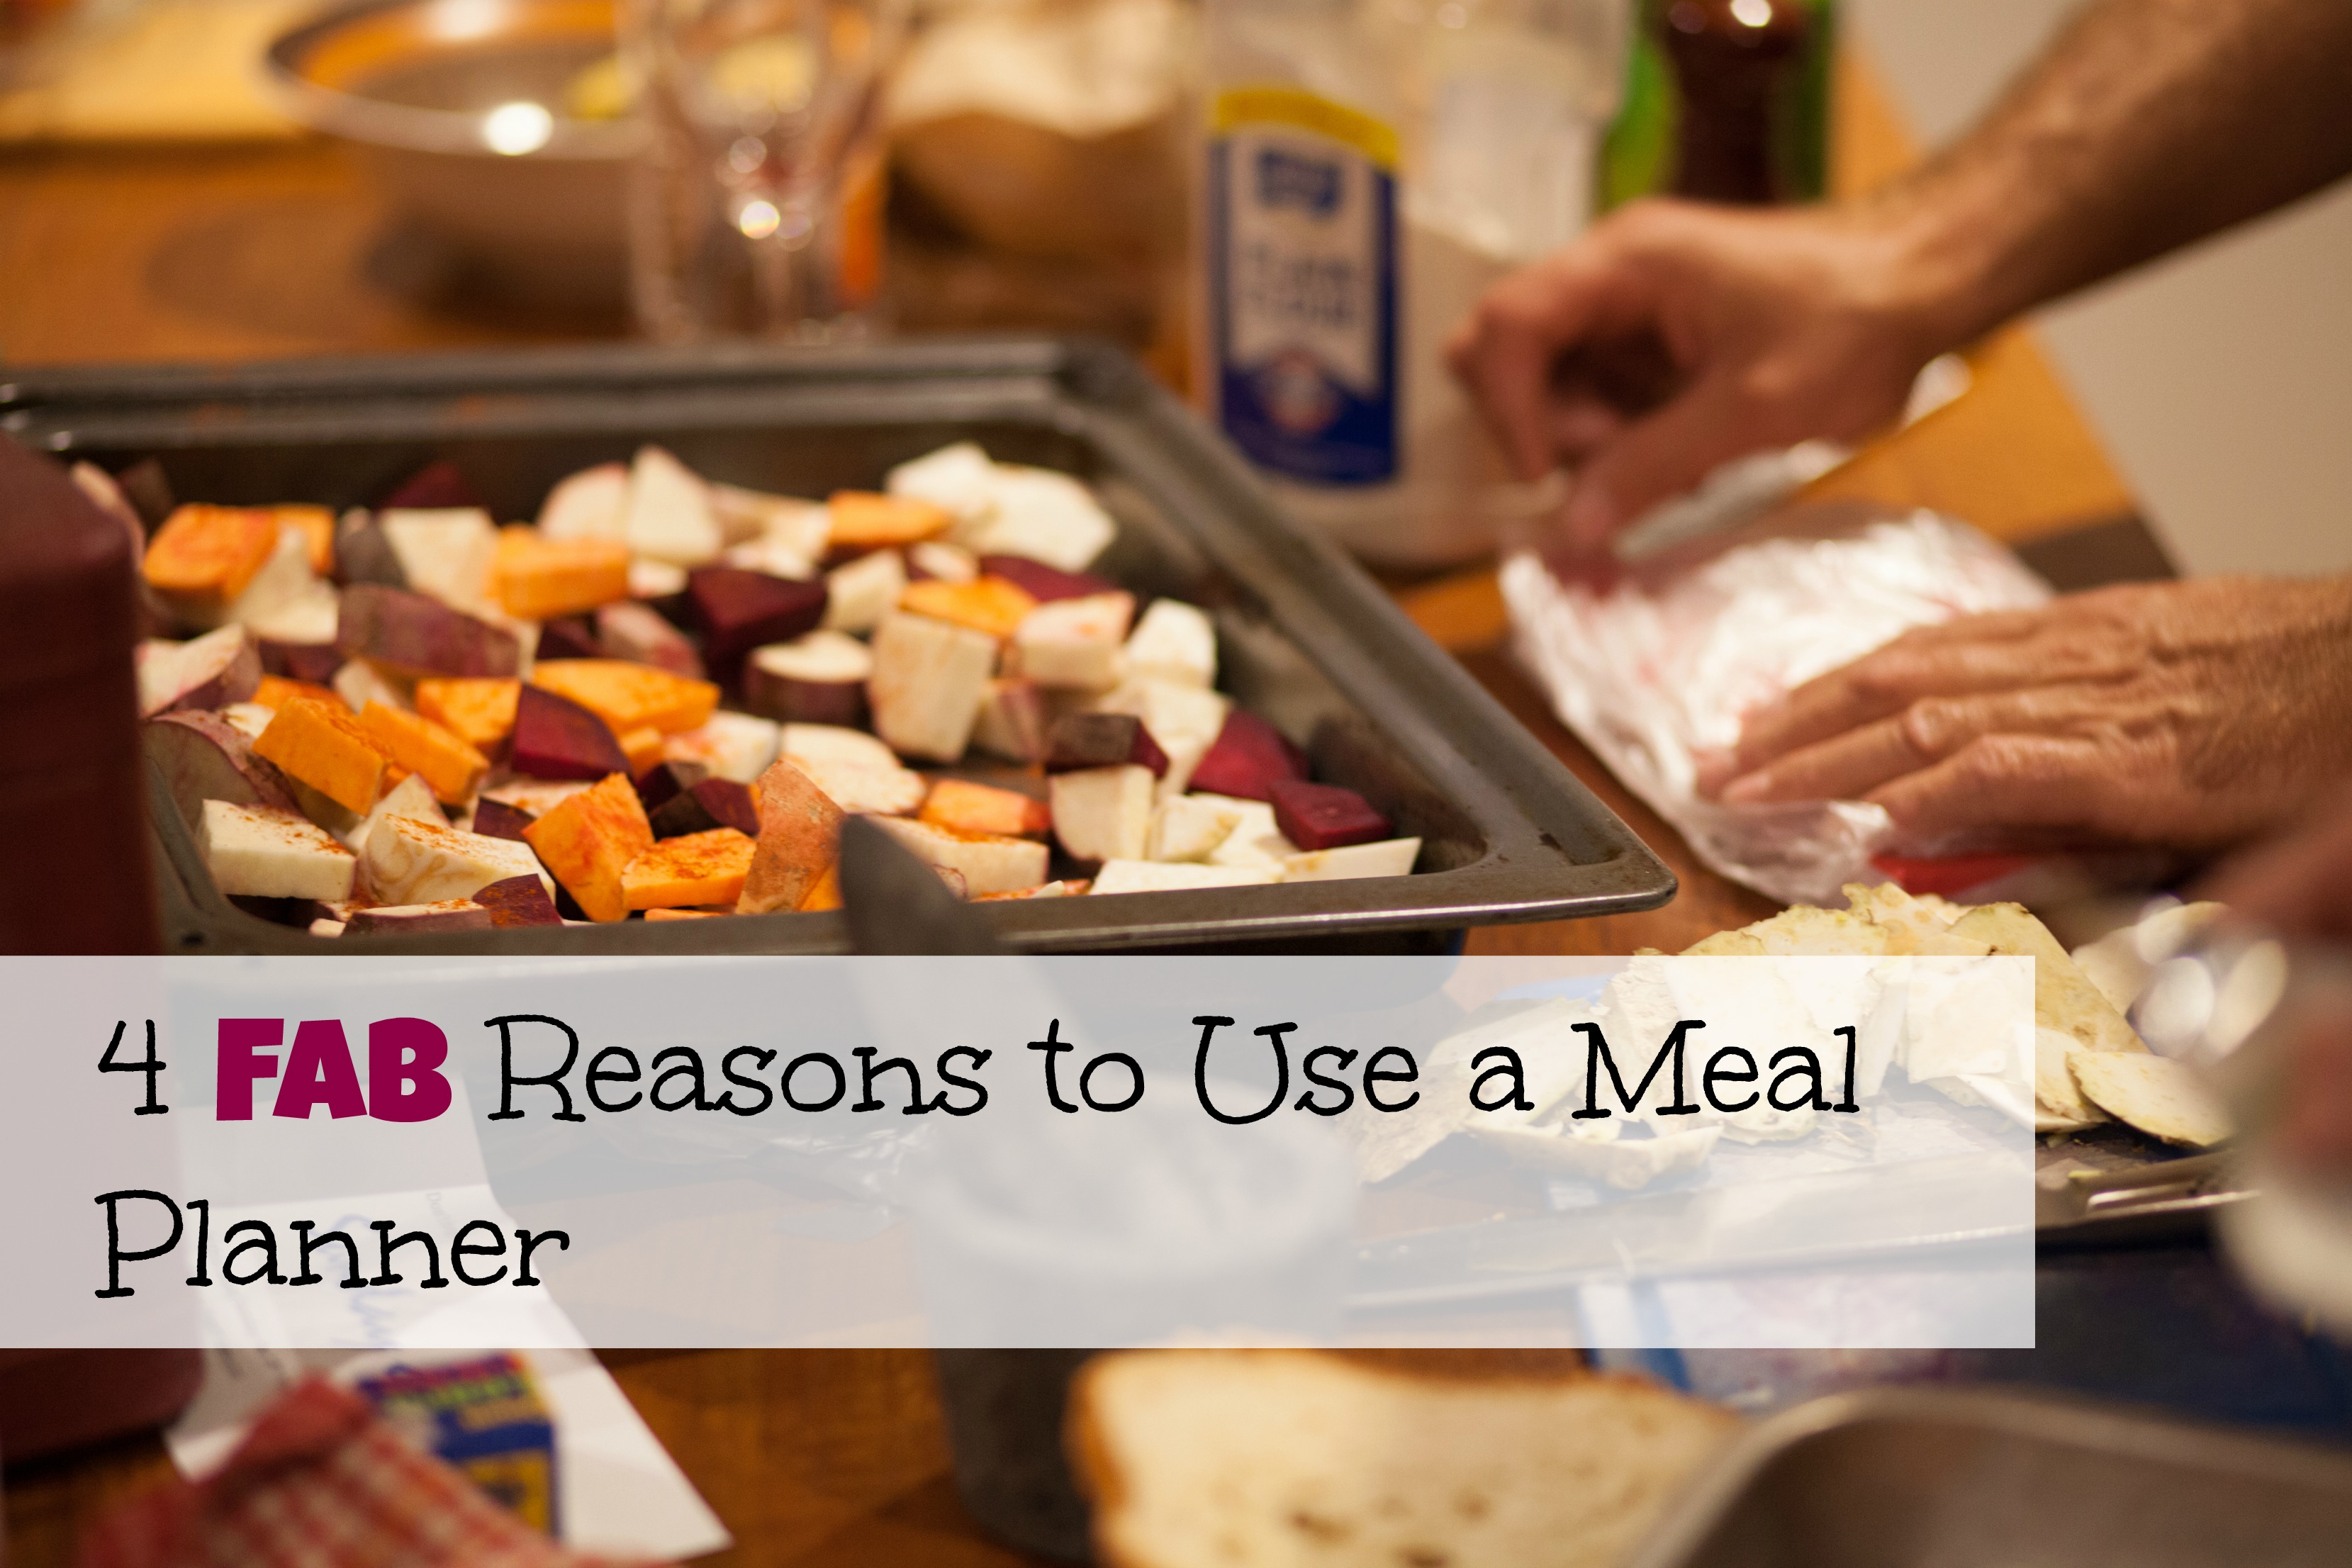 4 Fab Reasons to Use a Meal Planner